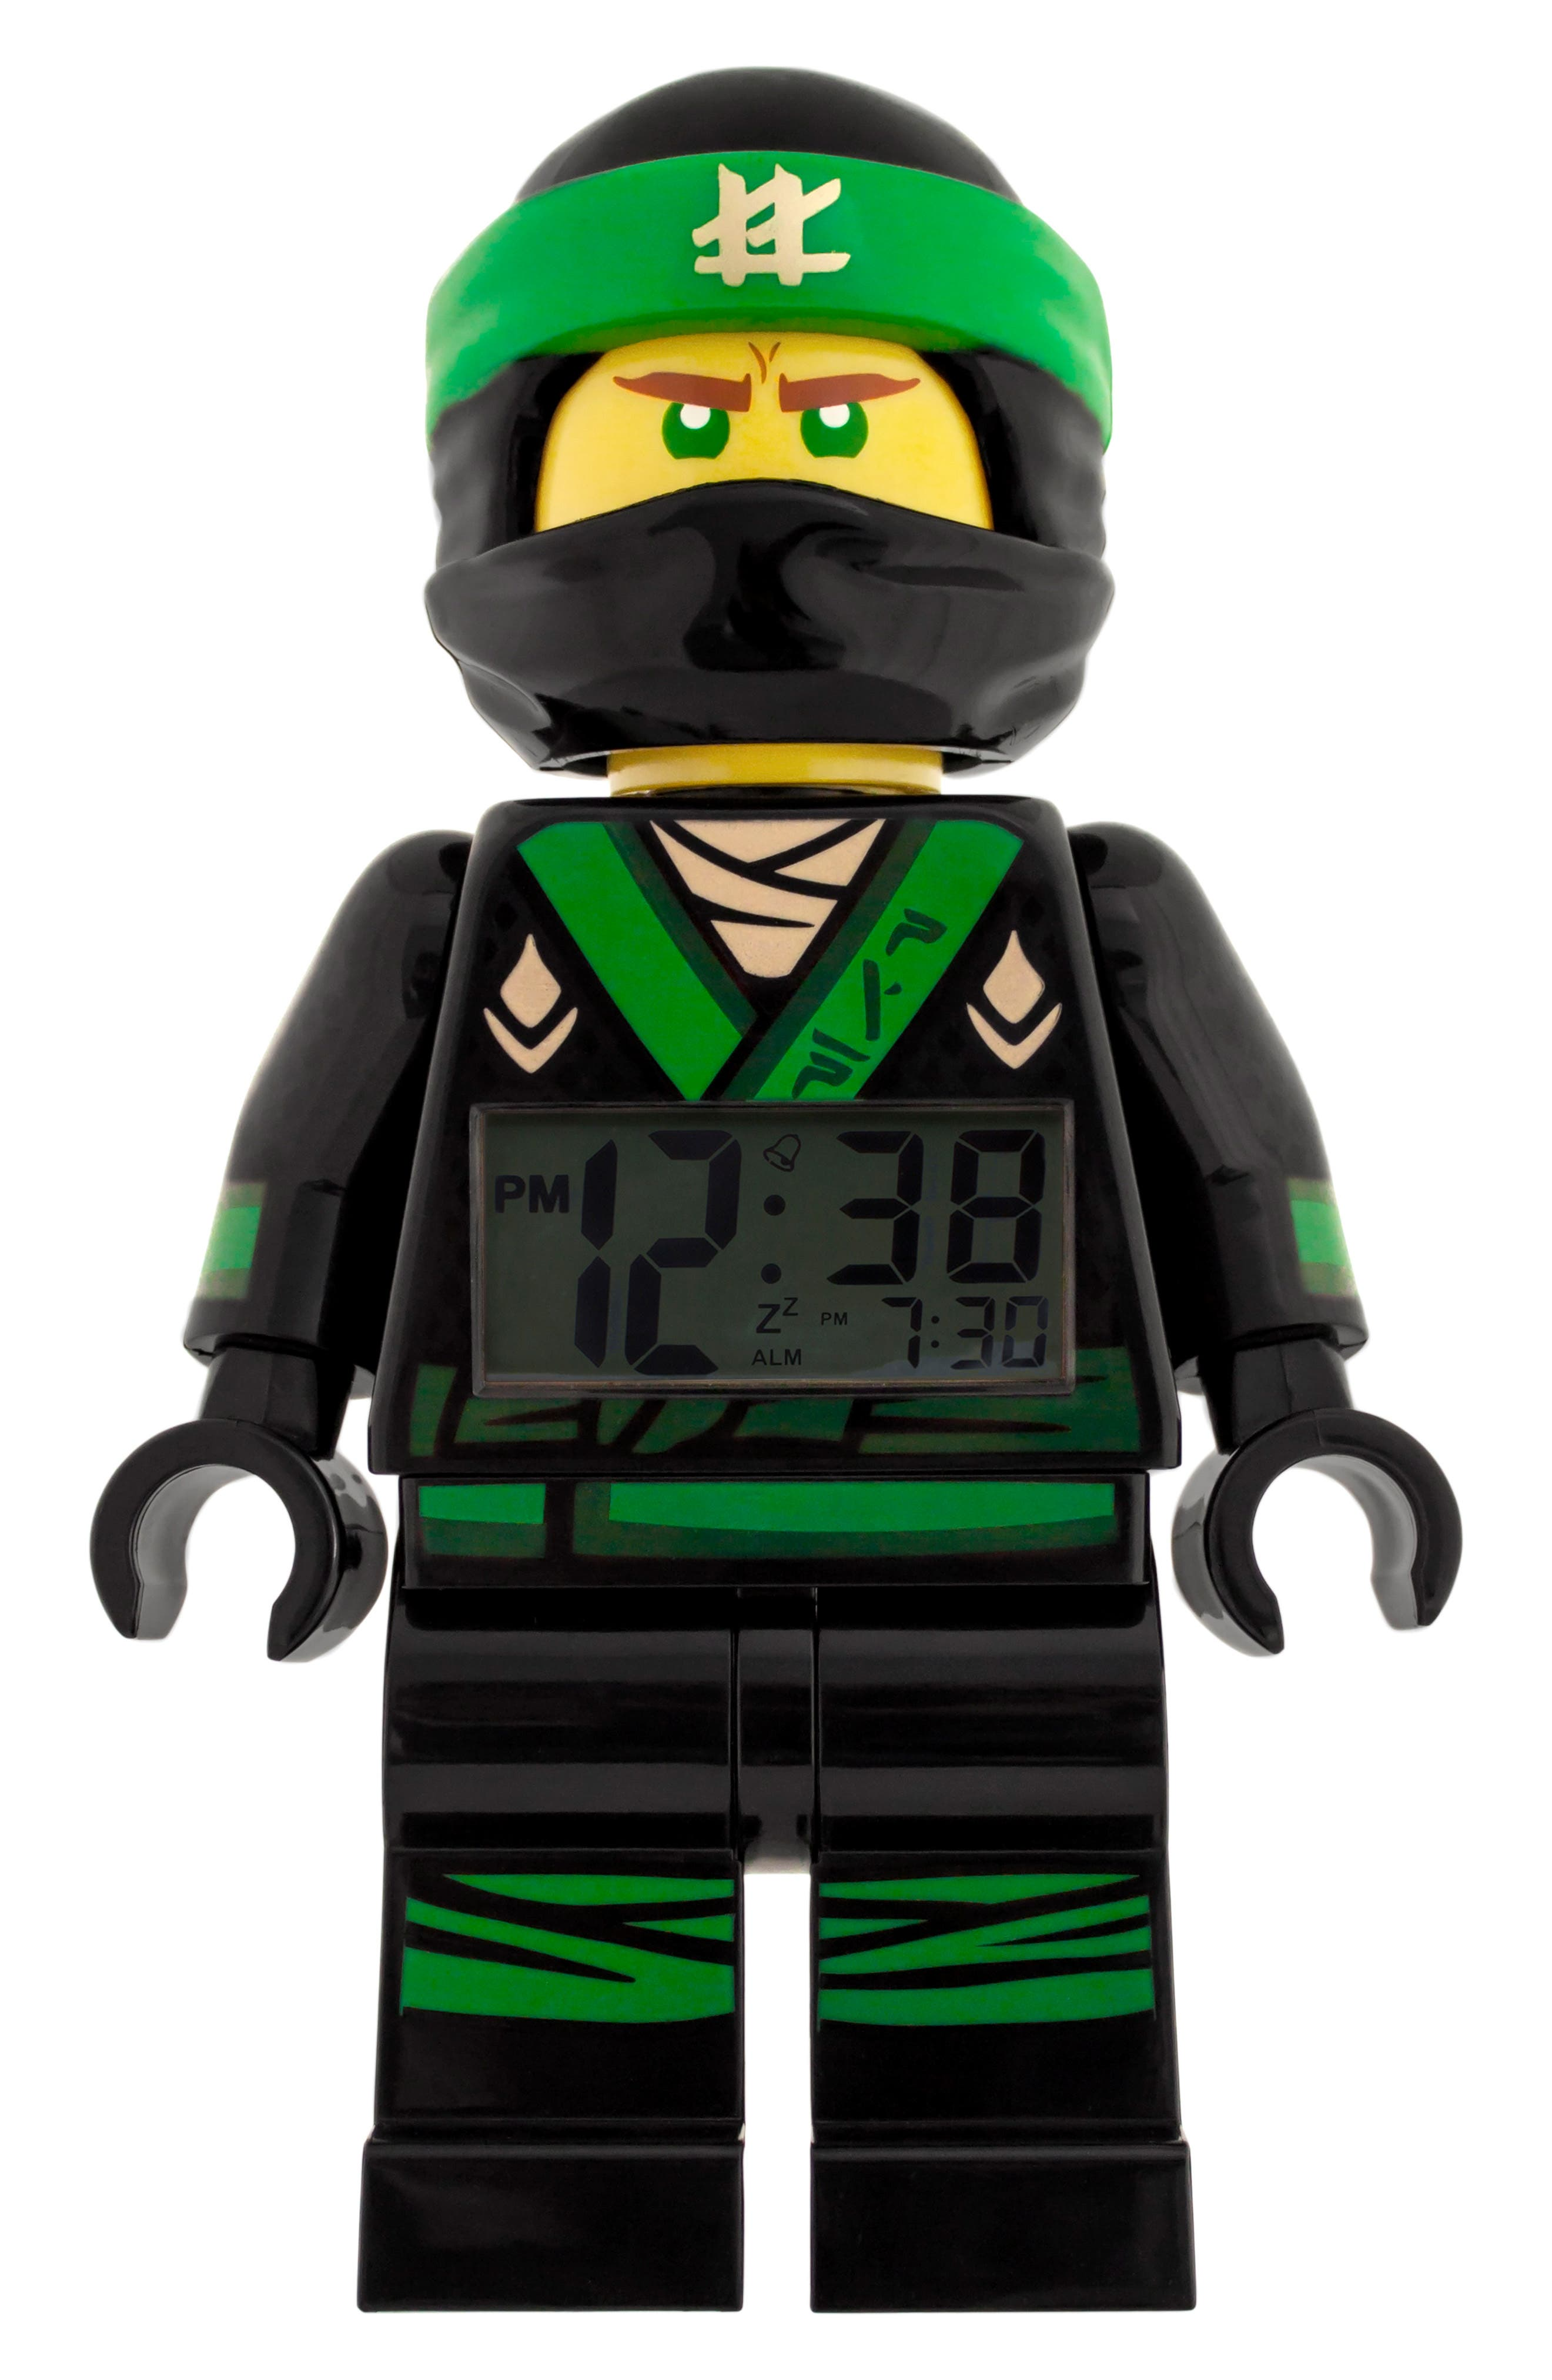 Ninjago Lloyd Digital Alarm Clock Minifigure,                             Main thumbnail 1, color,